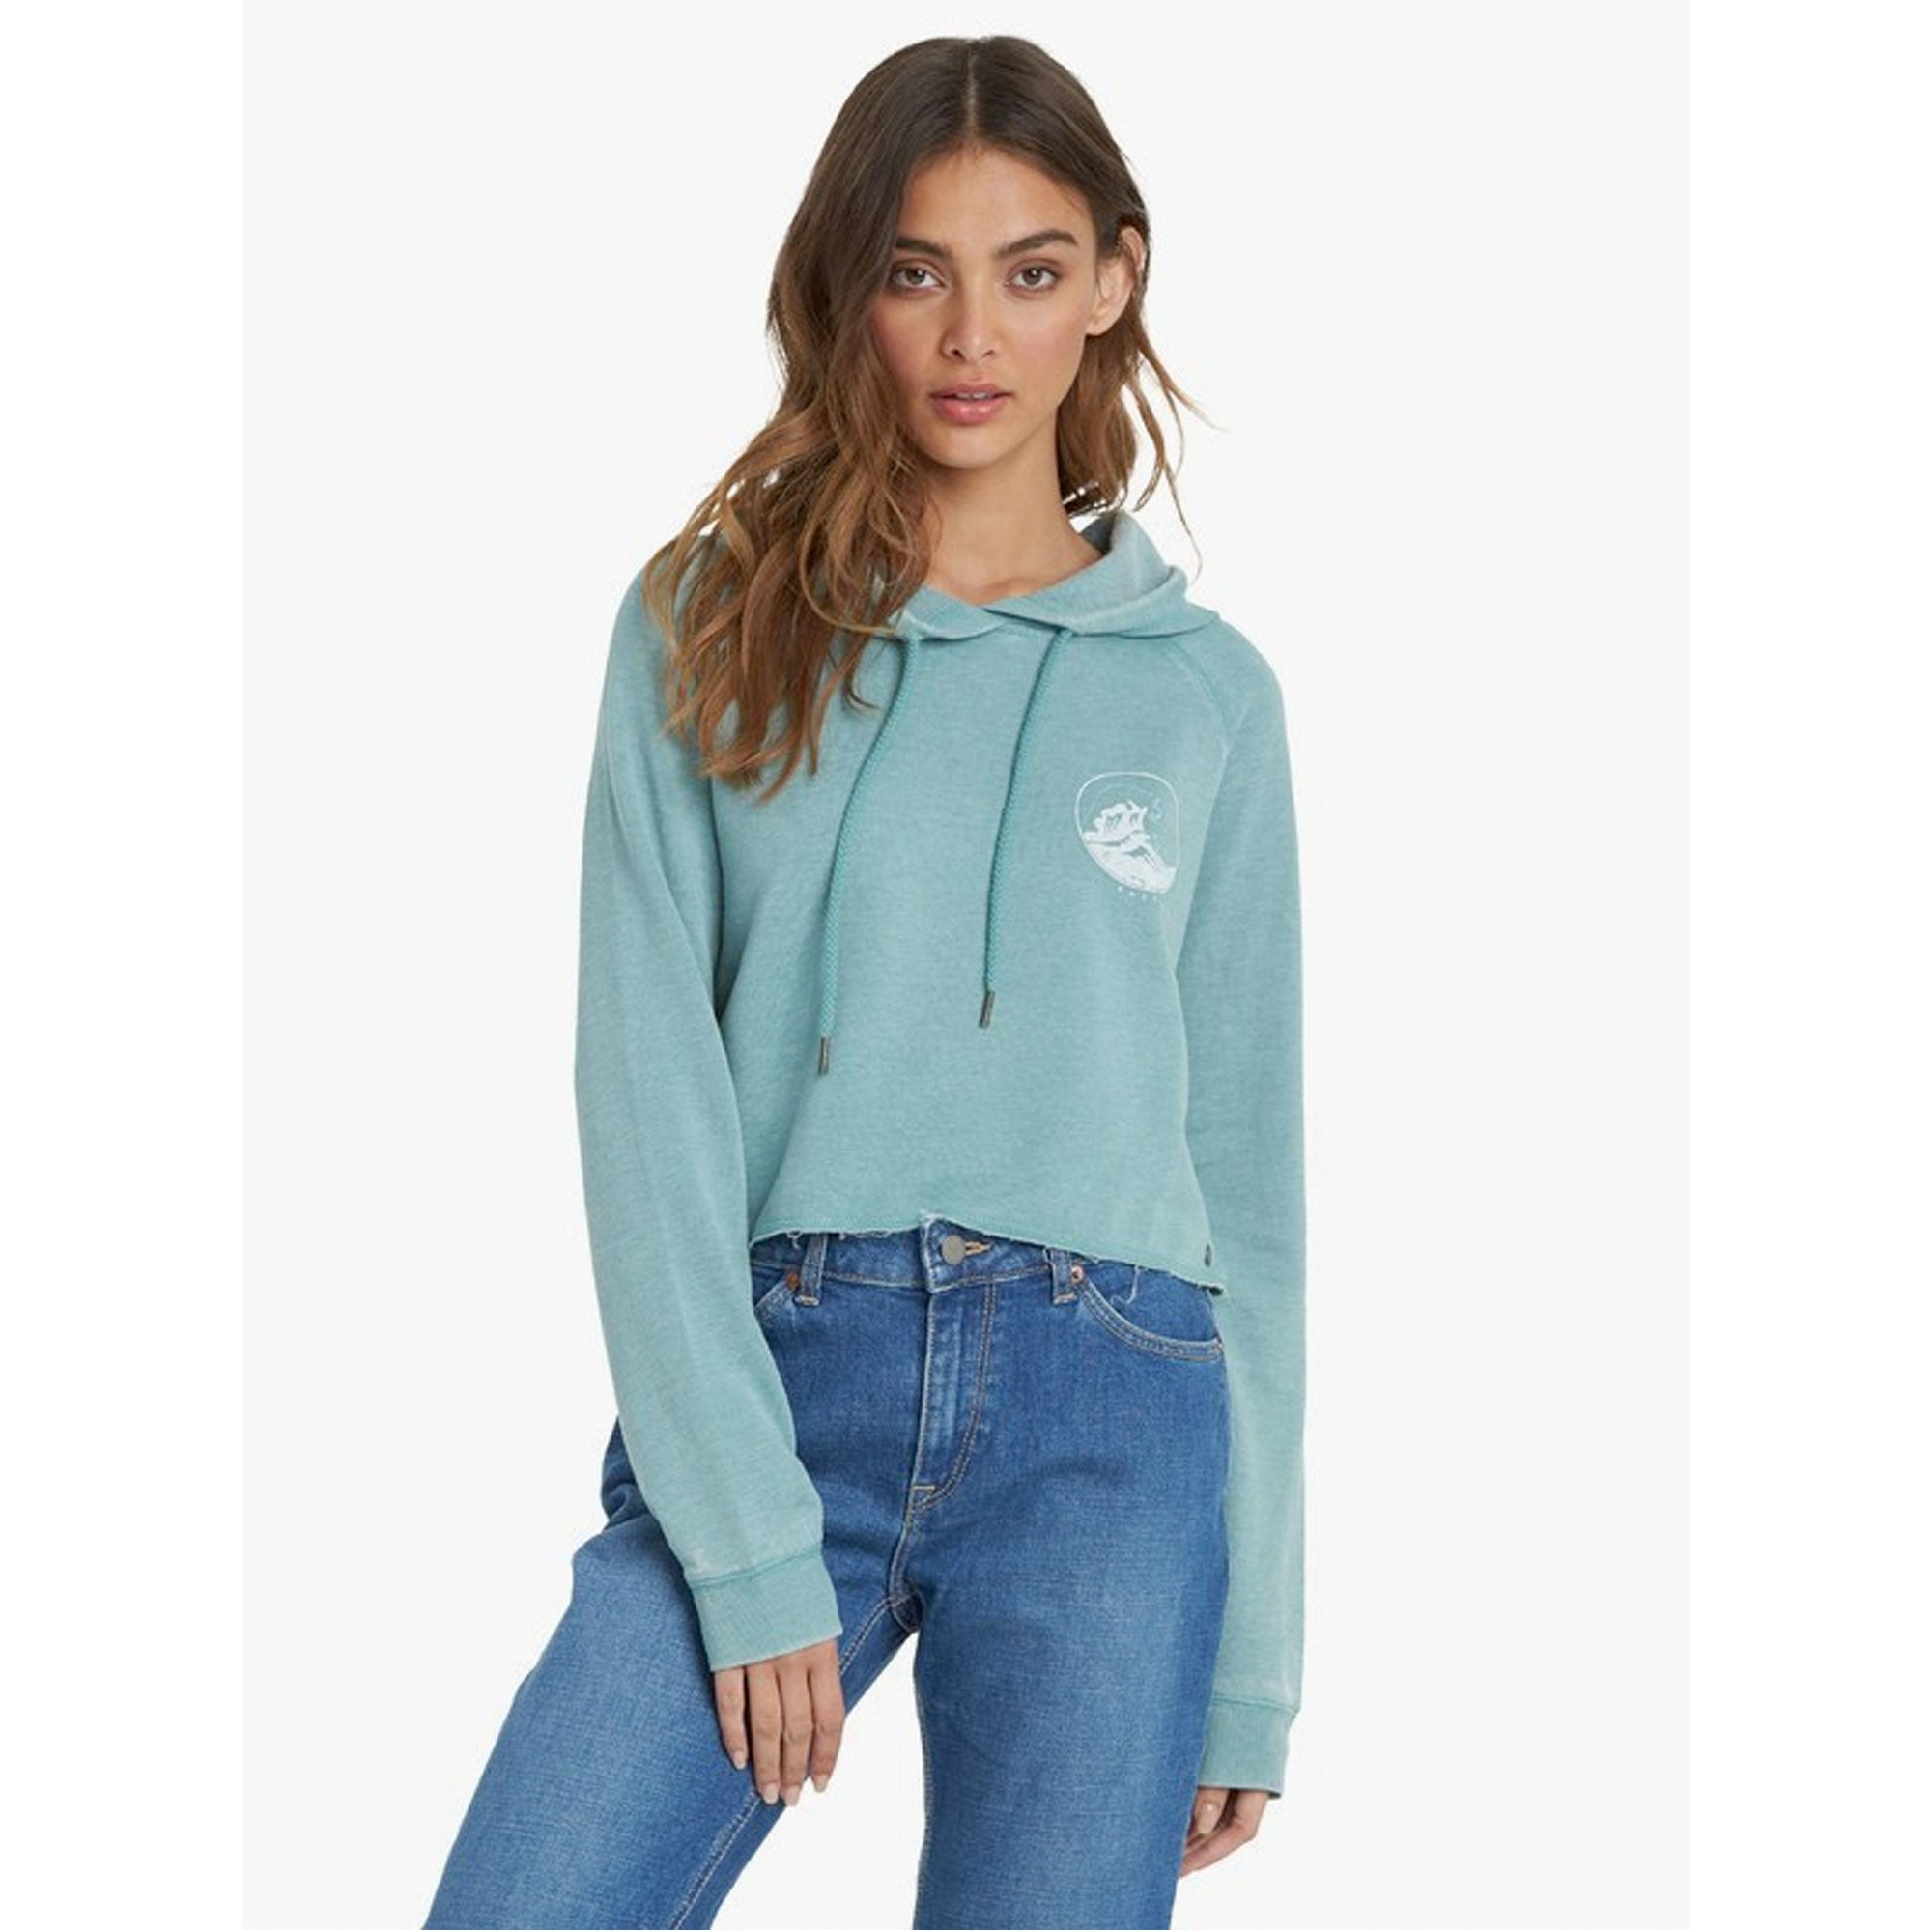 Roxy We Arrived A Women's Hoodie